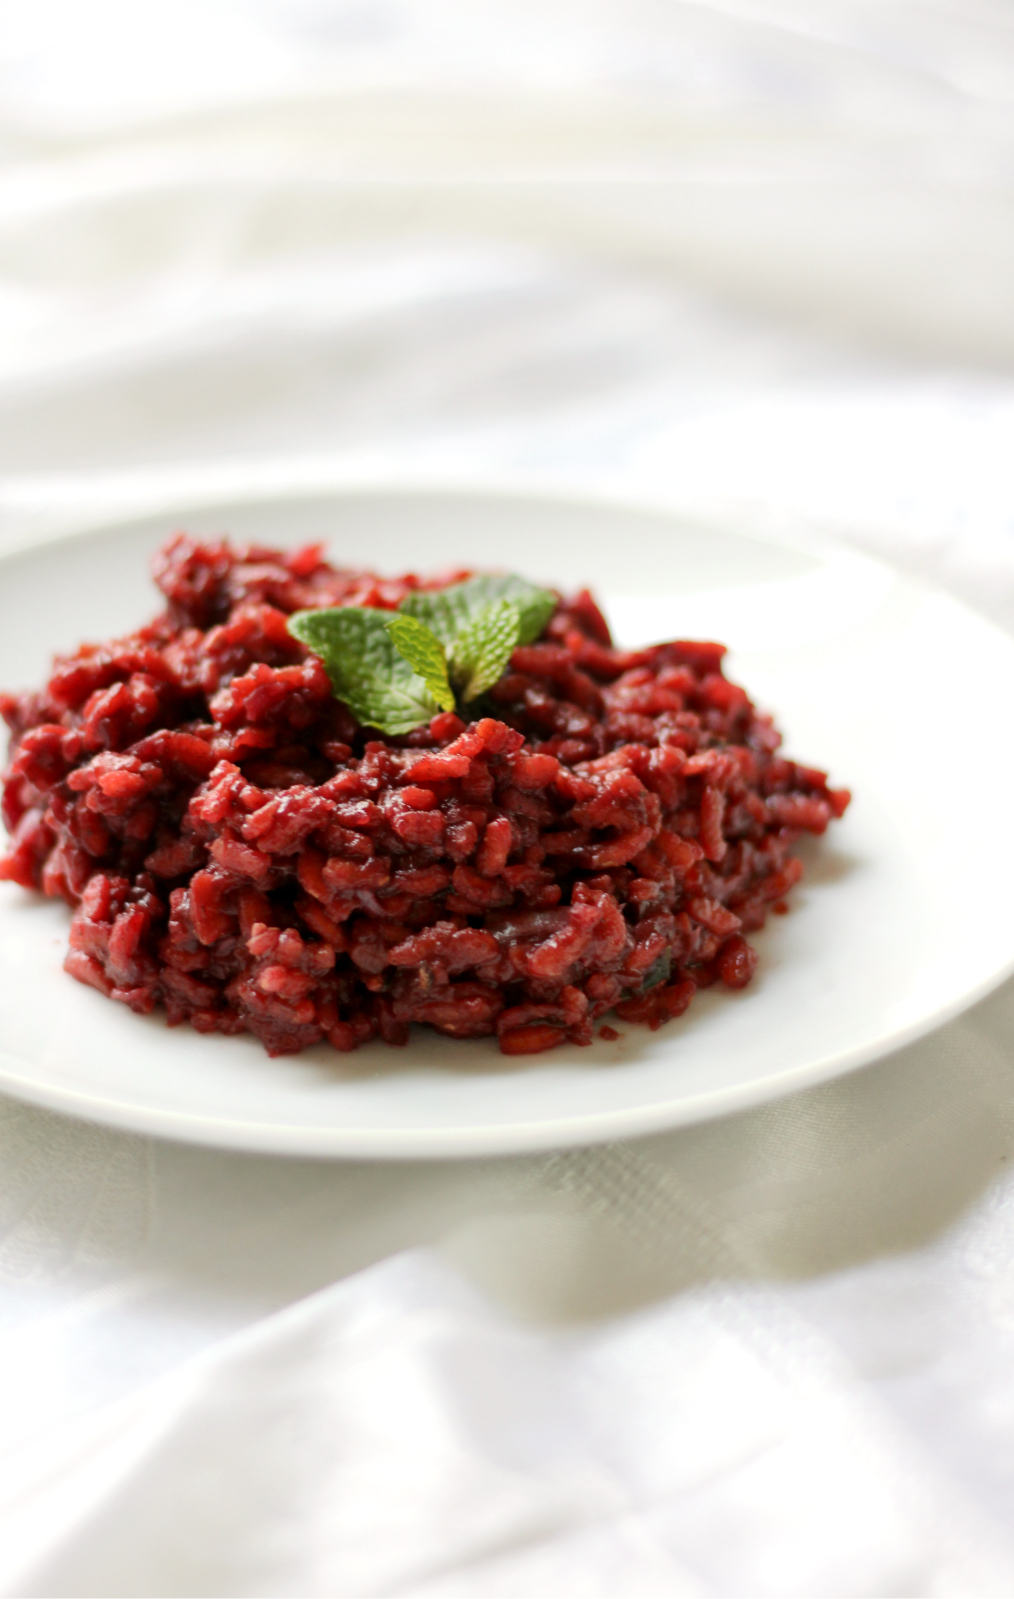 Beetroot Risotto | Strength and Sunshine @RebeccaGF666 Ultra creamy vegan and gluten-free beetroot risotto. A delicious and beautiful side dish done in 30 minutes. This healthy risotto recipe will have you winning dinnertime! [ad]